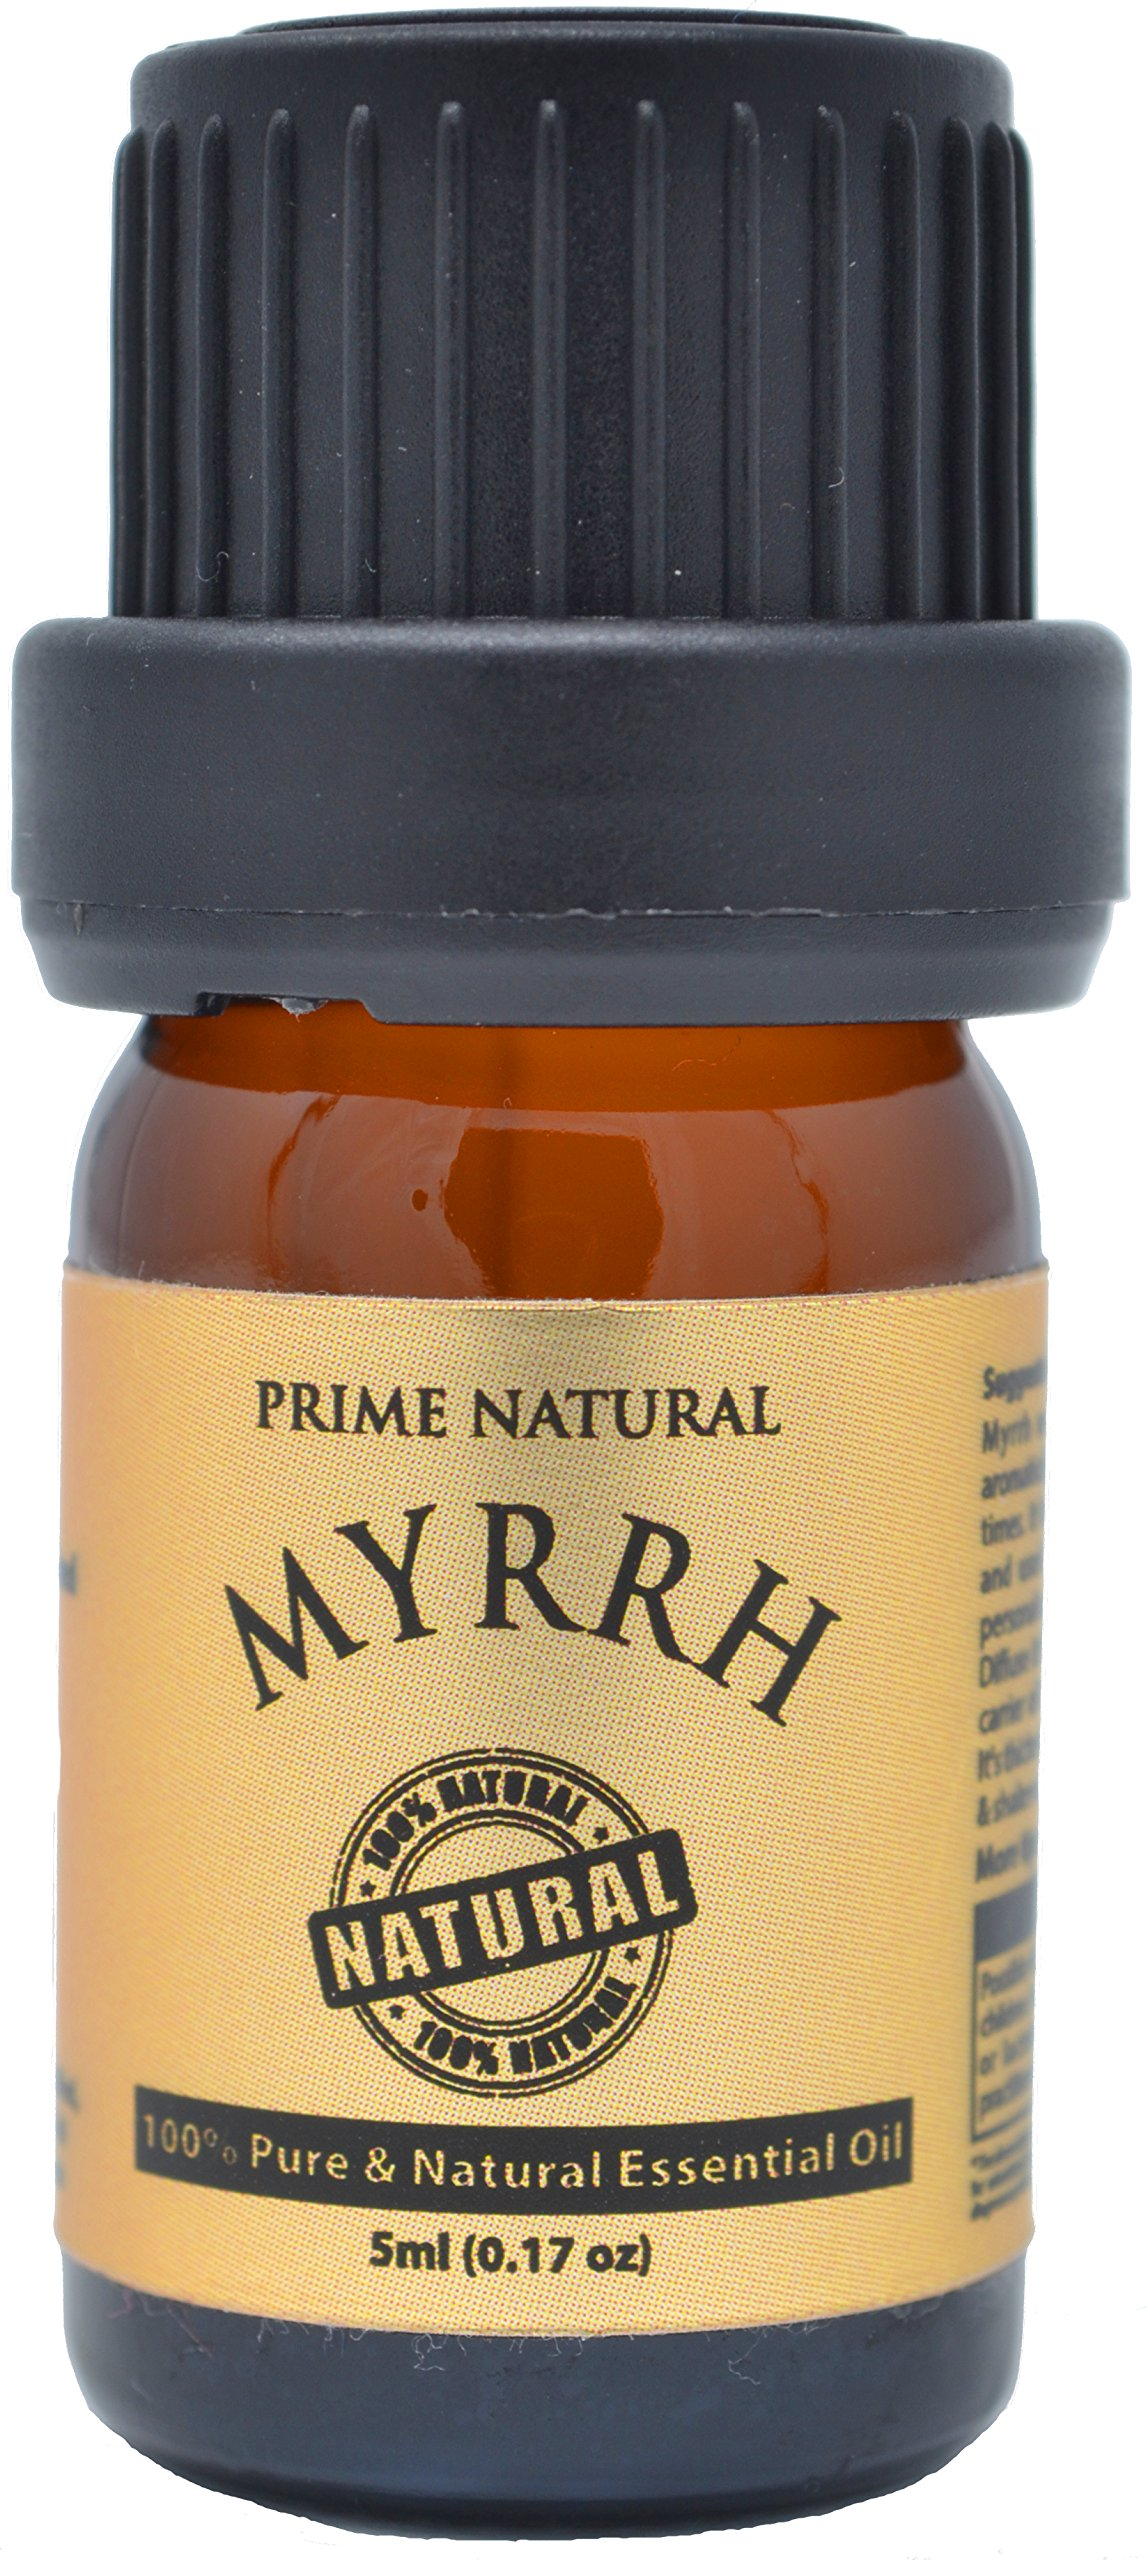 Myrrh Essential Oil 5ml/0.16oz - Commiphora Myrrha - 100% Natural Pure Undiluted Therapeutic Grade for Aromatherapy Scents Diffuser Skincare Anti Aging Calming Peace Spiritual